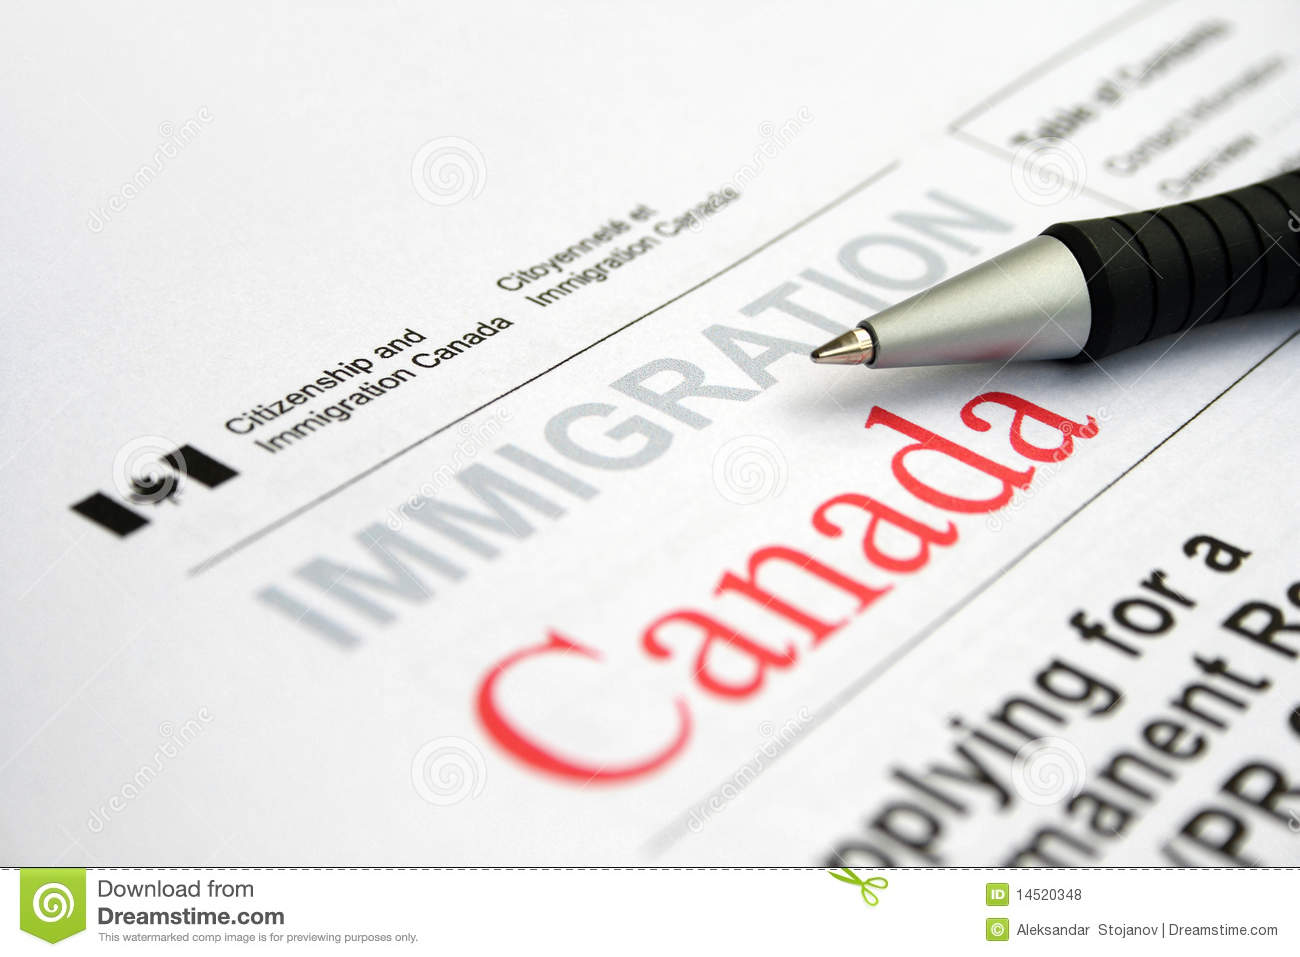 cannot download canadian visa form imm5257 ... - Adobe ...